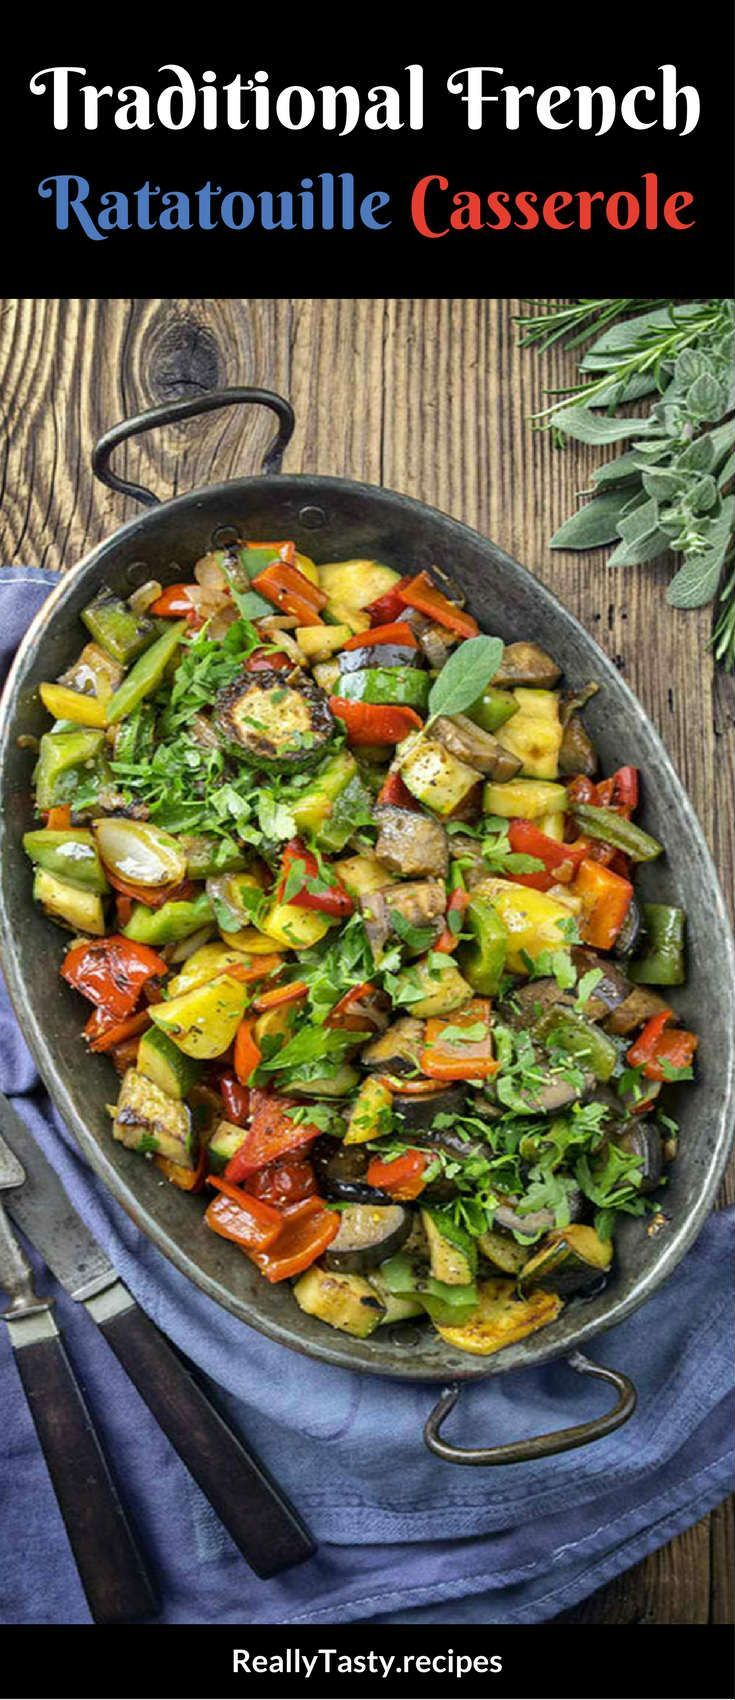 Traditional french ratatouille casserole recipe ratatouille traditional french food forumfinder Choice Image